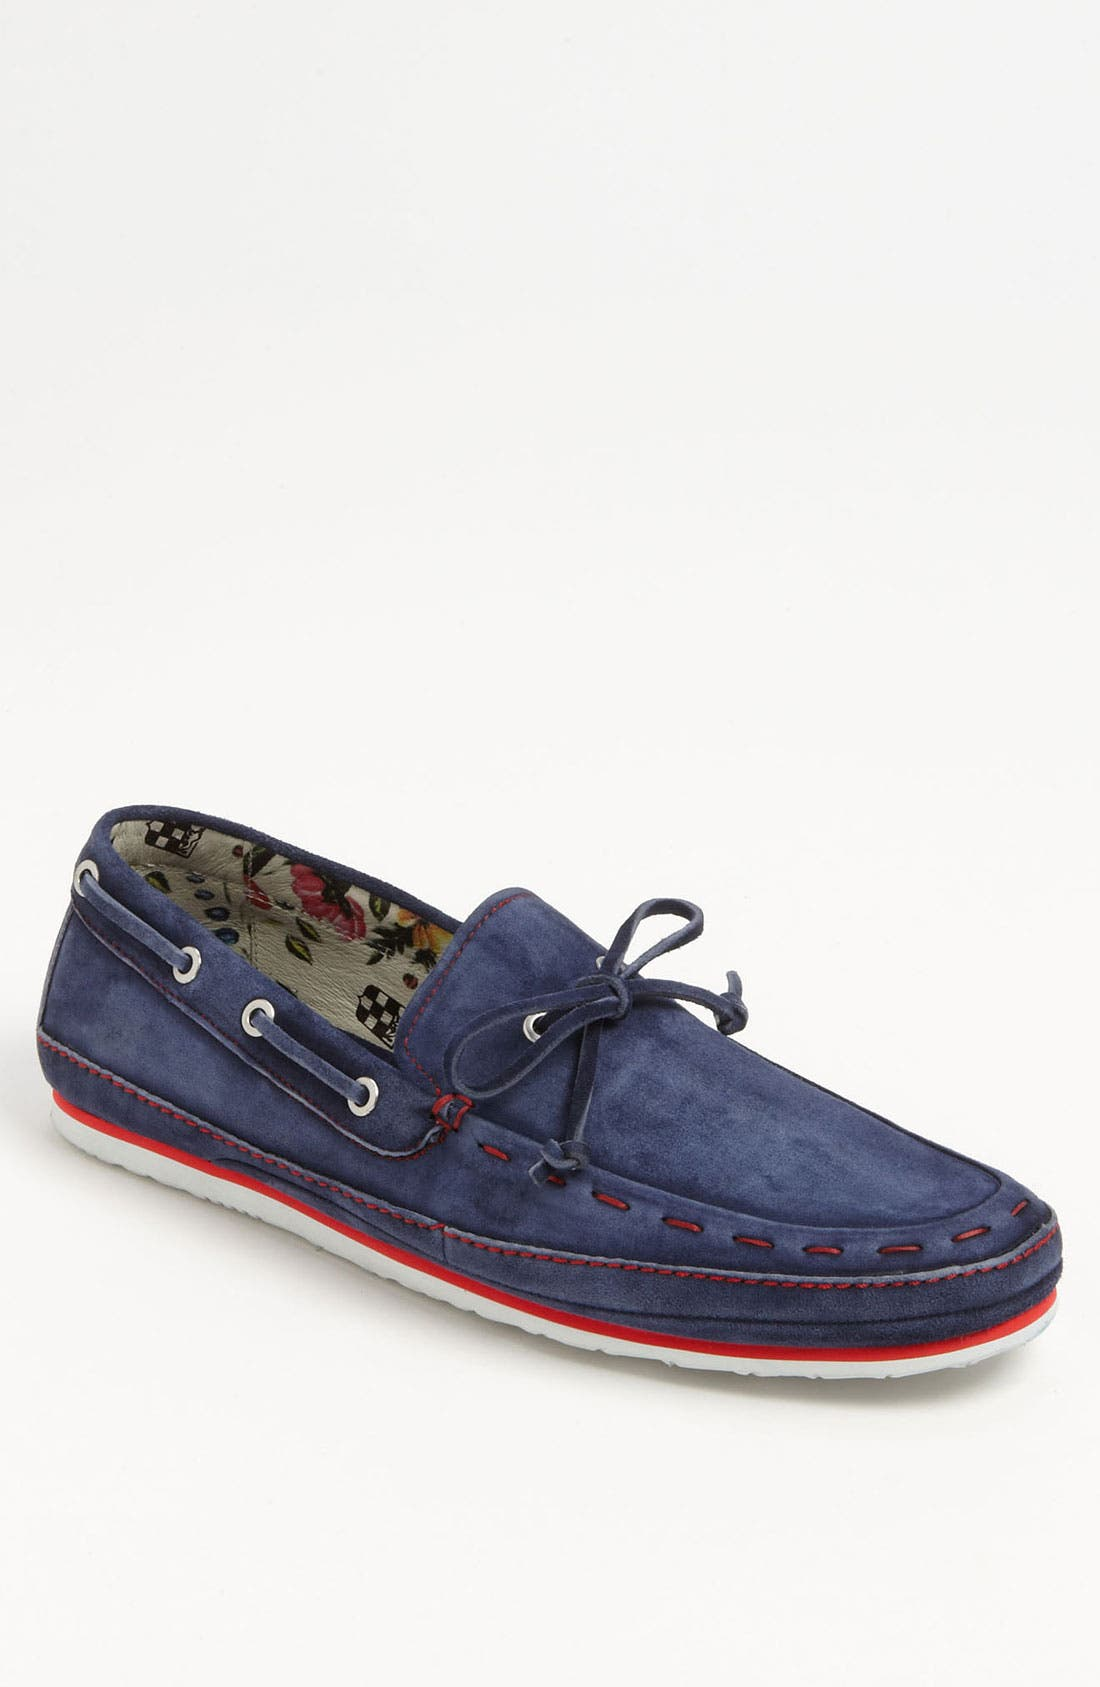 Alternate Image 1 Selected - Vince Camuto 'Marino' Boat Shoe